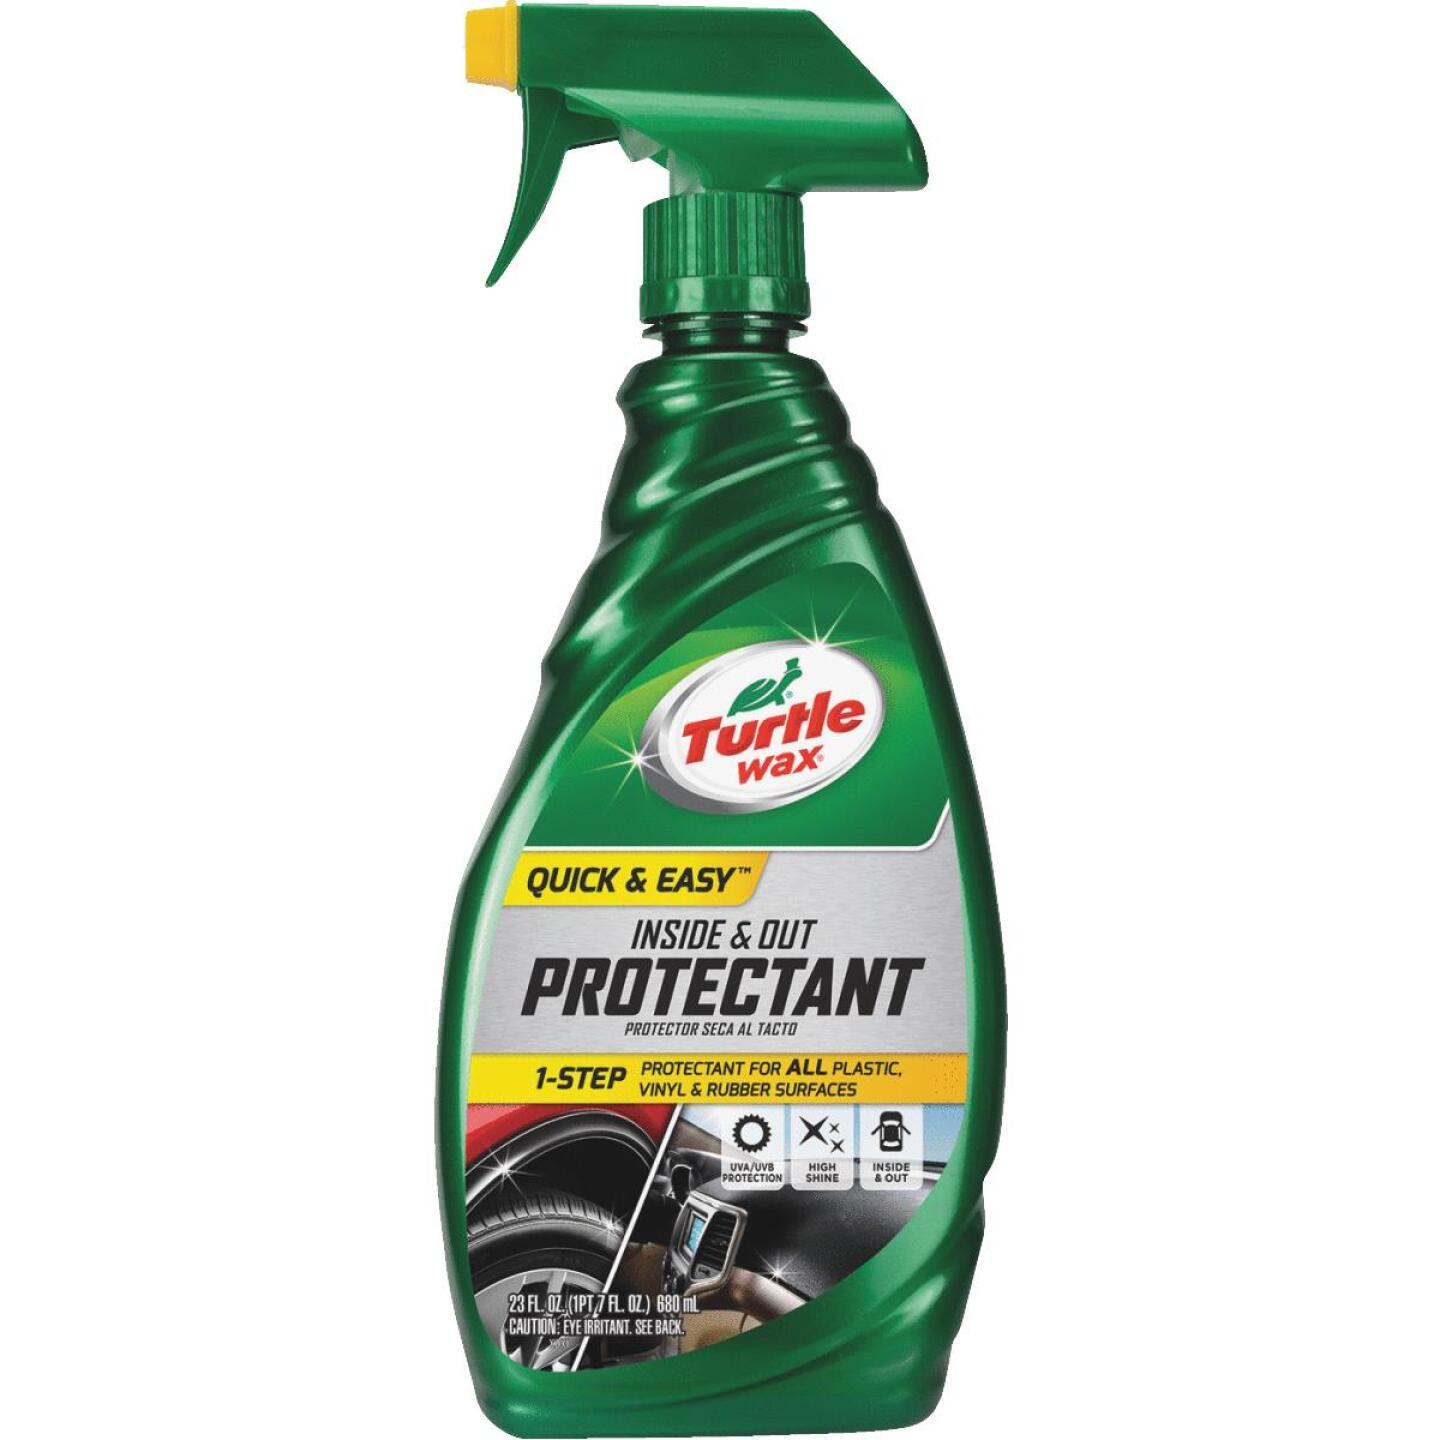 Turtle Wax 23 Oz. Trigger Spray Inside & Out Protectant Image 1